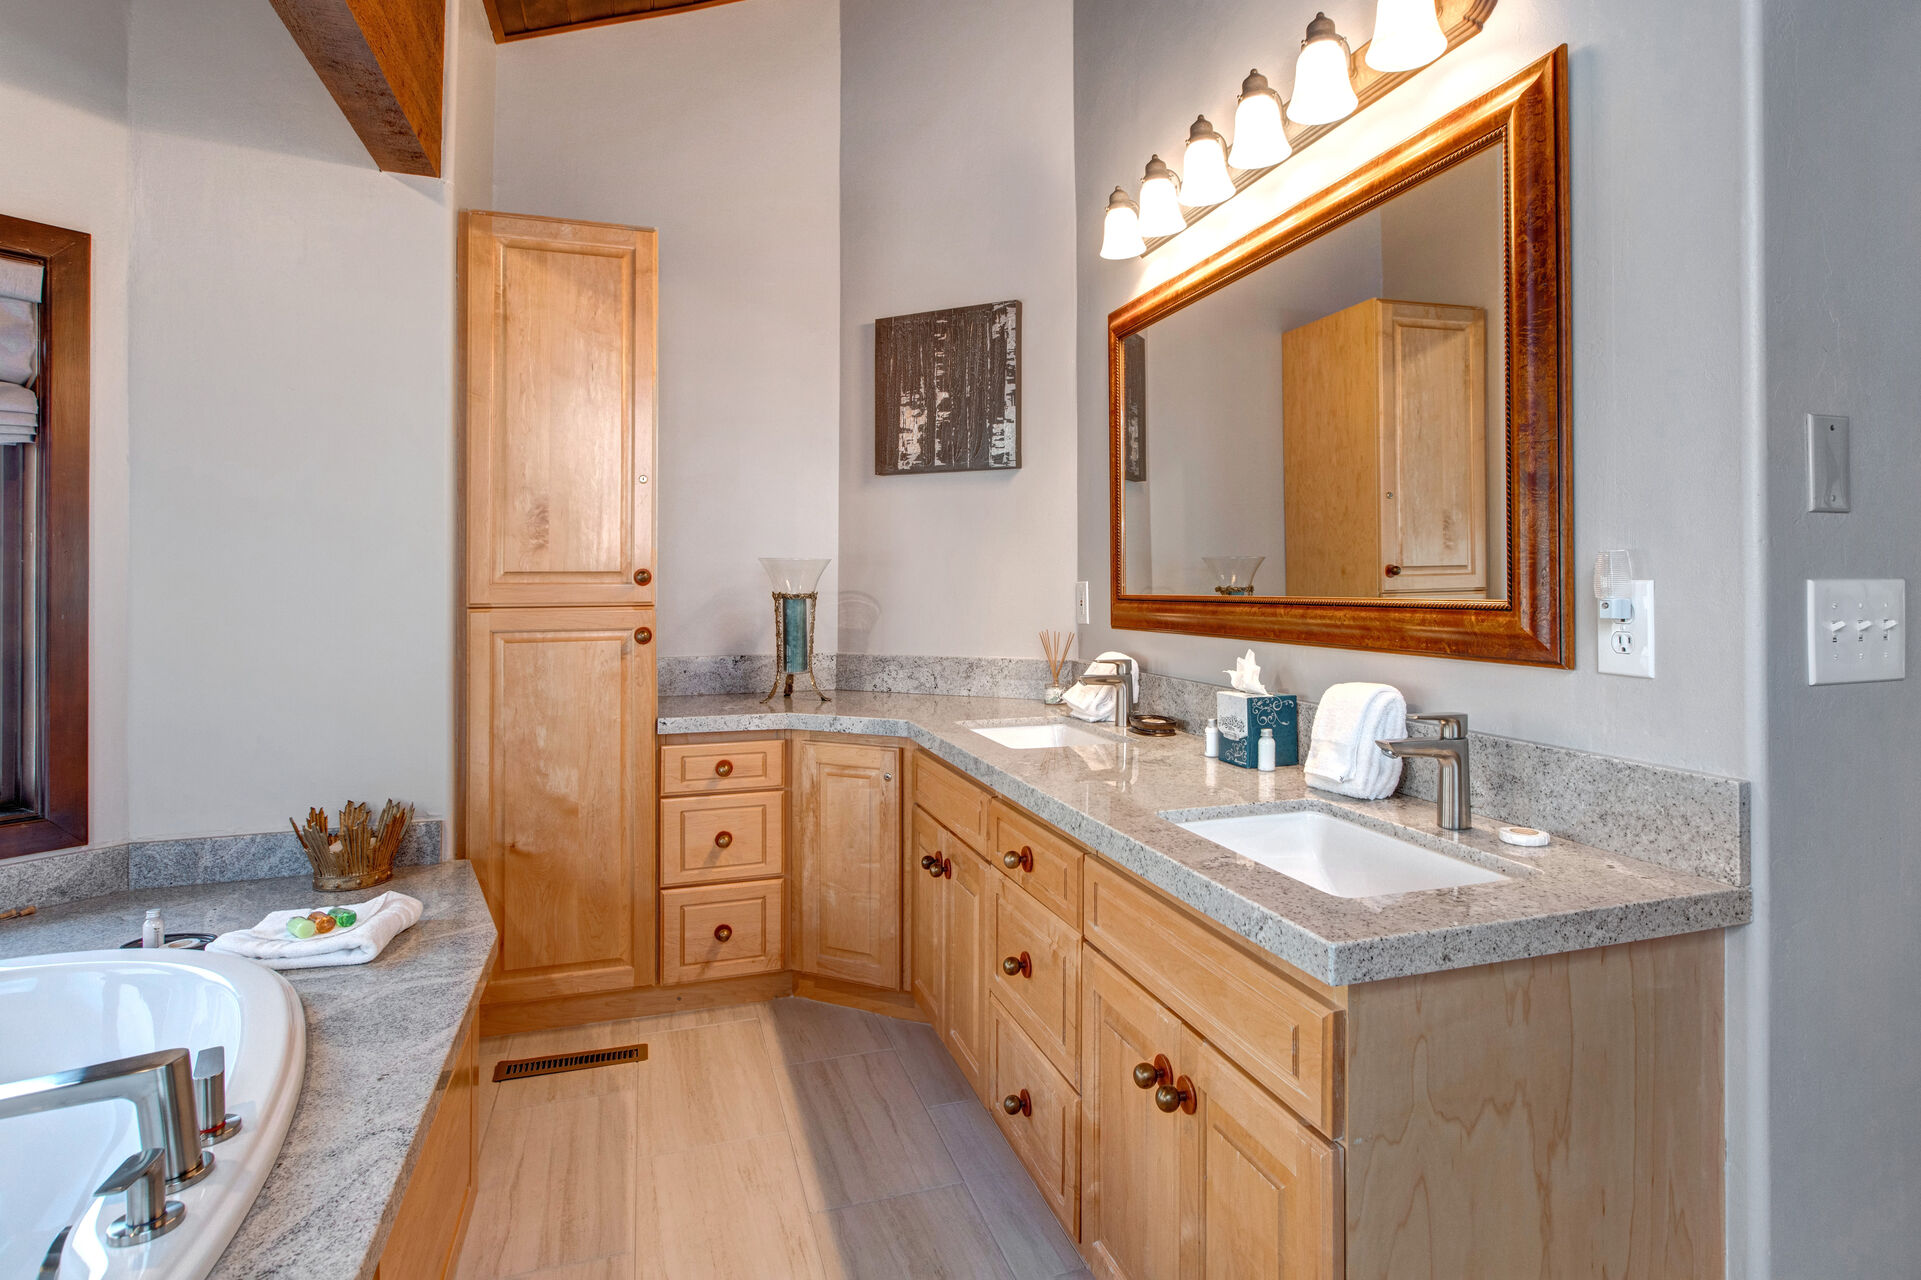 Grand Master Bath with Dual Stone Counter Sink, and a Large Soaking Tub